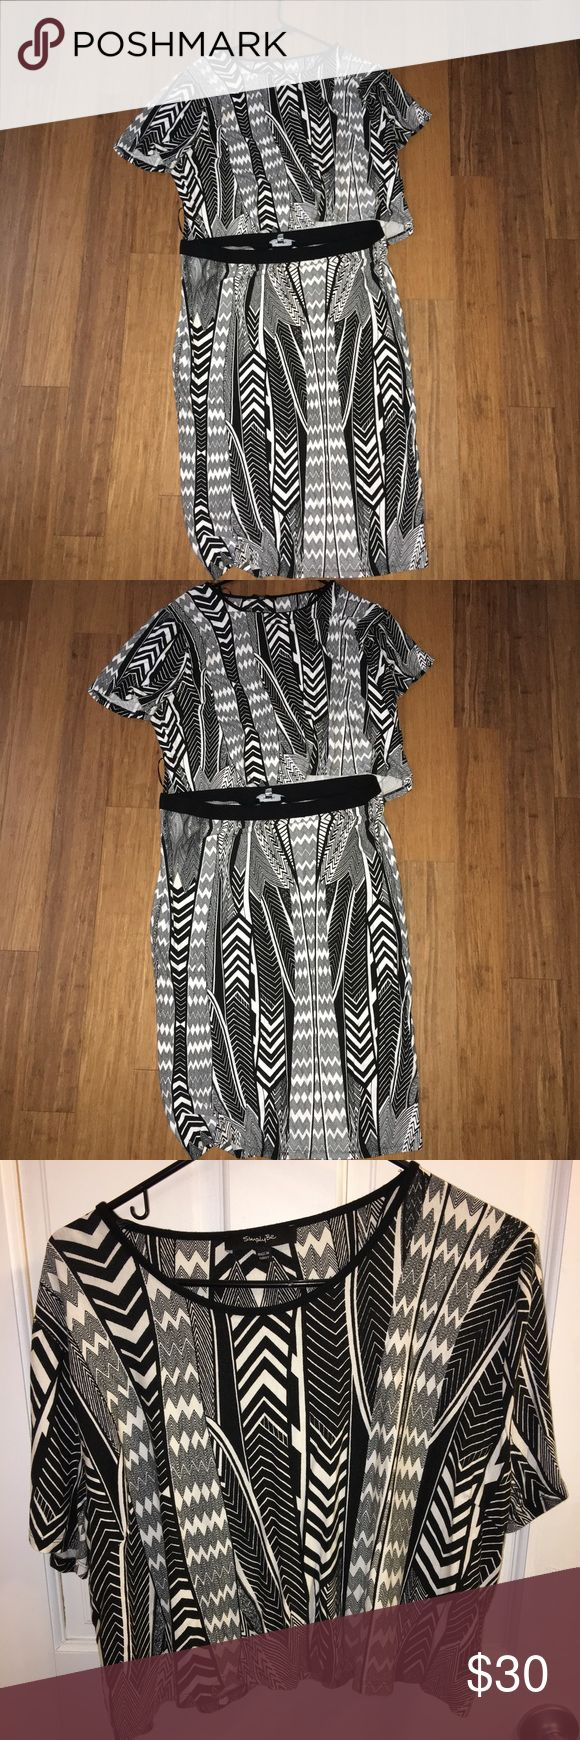 Plus size tribal print skirt set SZ 18 Plus size Simply Be tribal print skirt set. Top is cropped, but flowy rather than fitted. Pair with a bold necklace and some cute sandals for a casual yet cute look! Gently used!  Size 18 Simply Be Skirts Midi